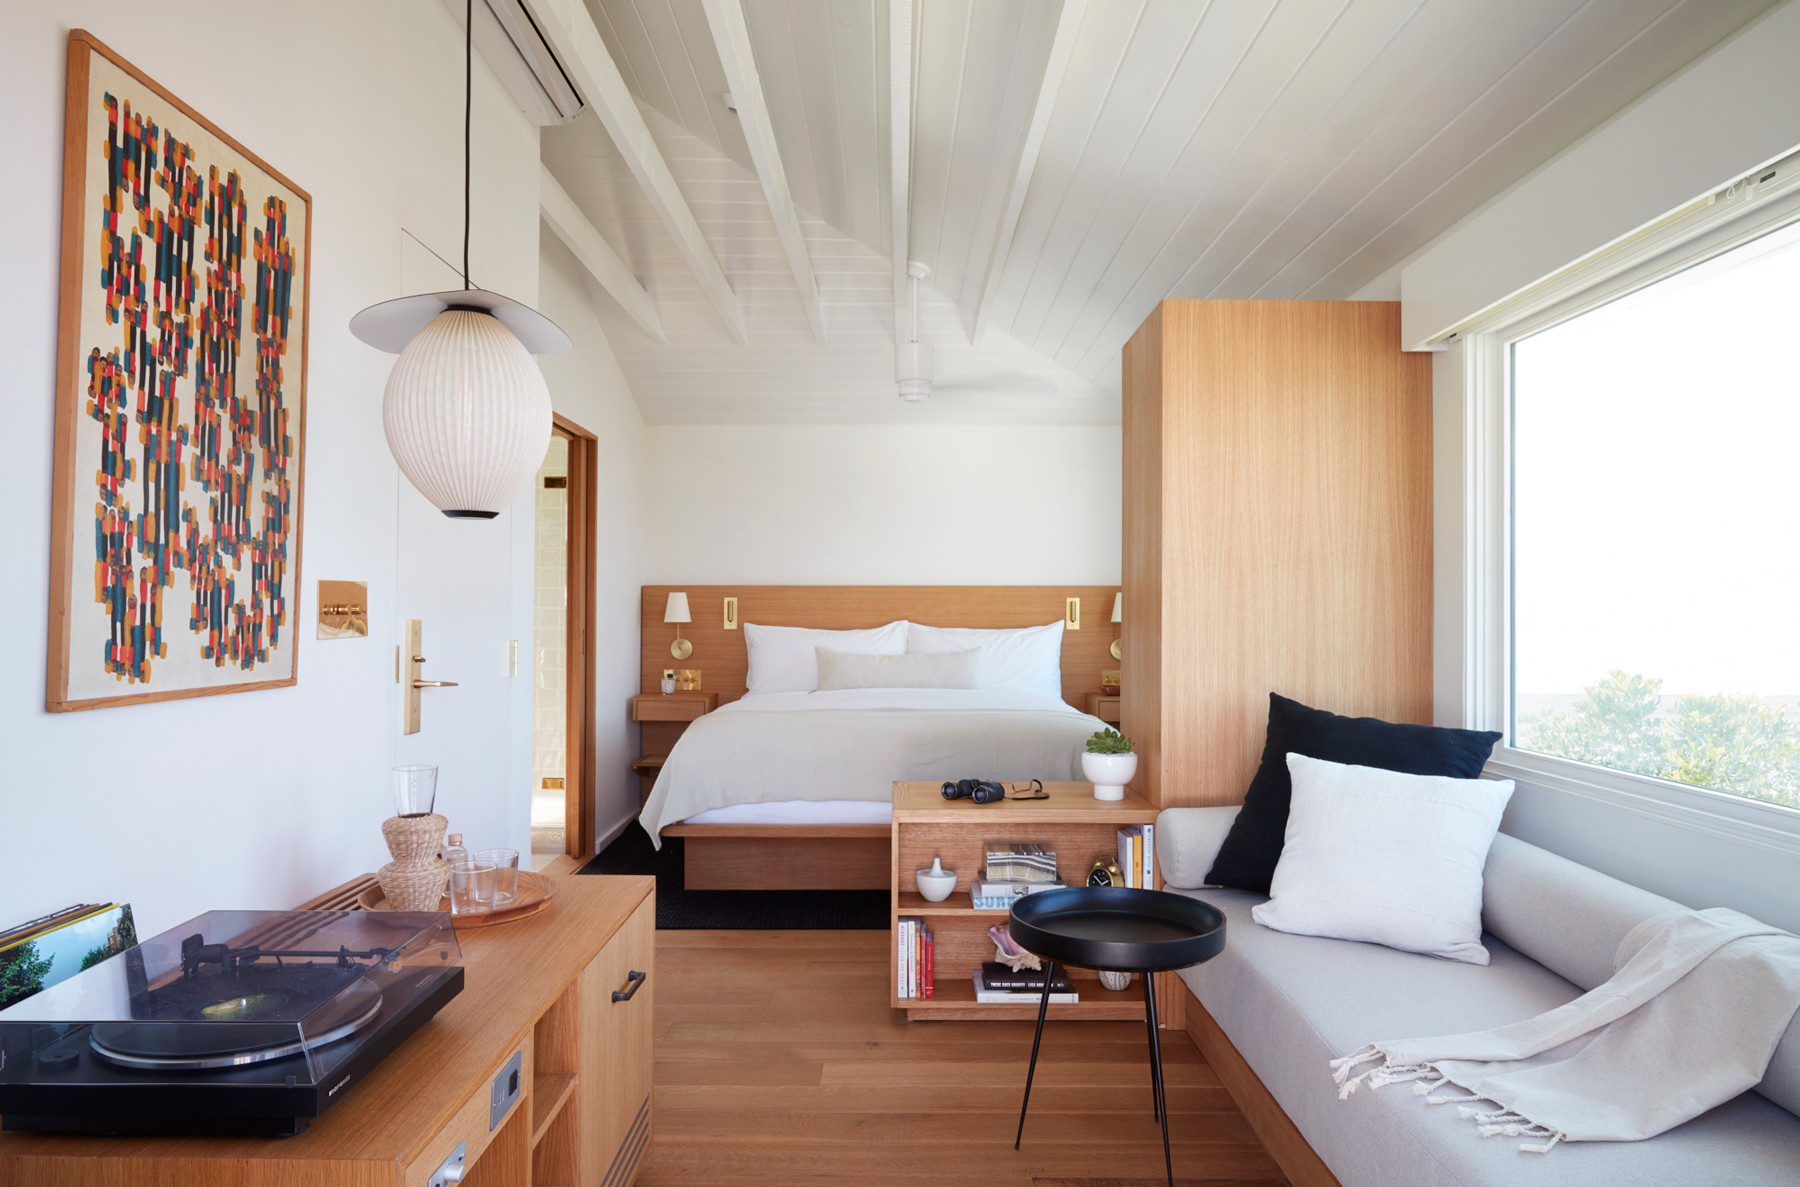 This Seaside Hotel Is A Dreamy Vision Of Modern Design